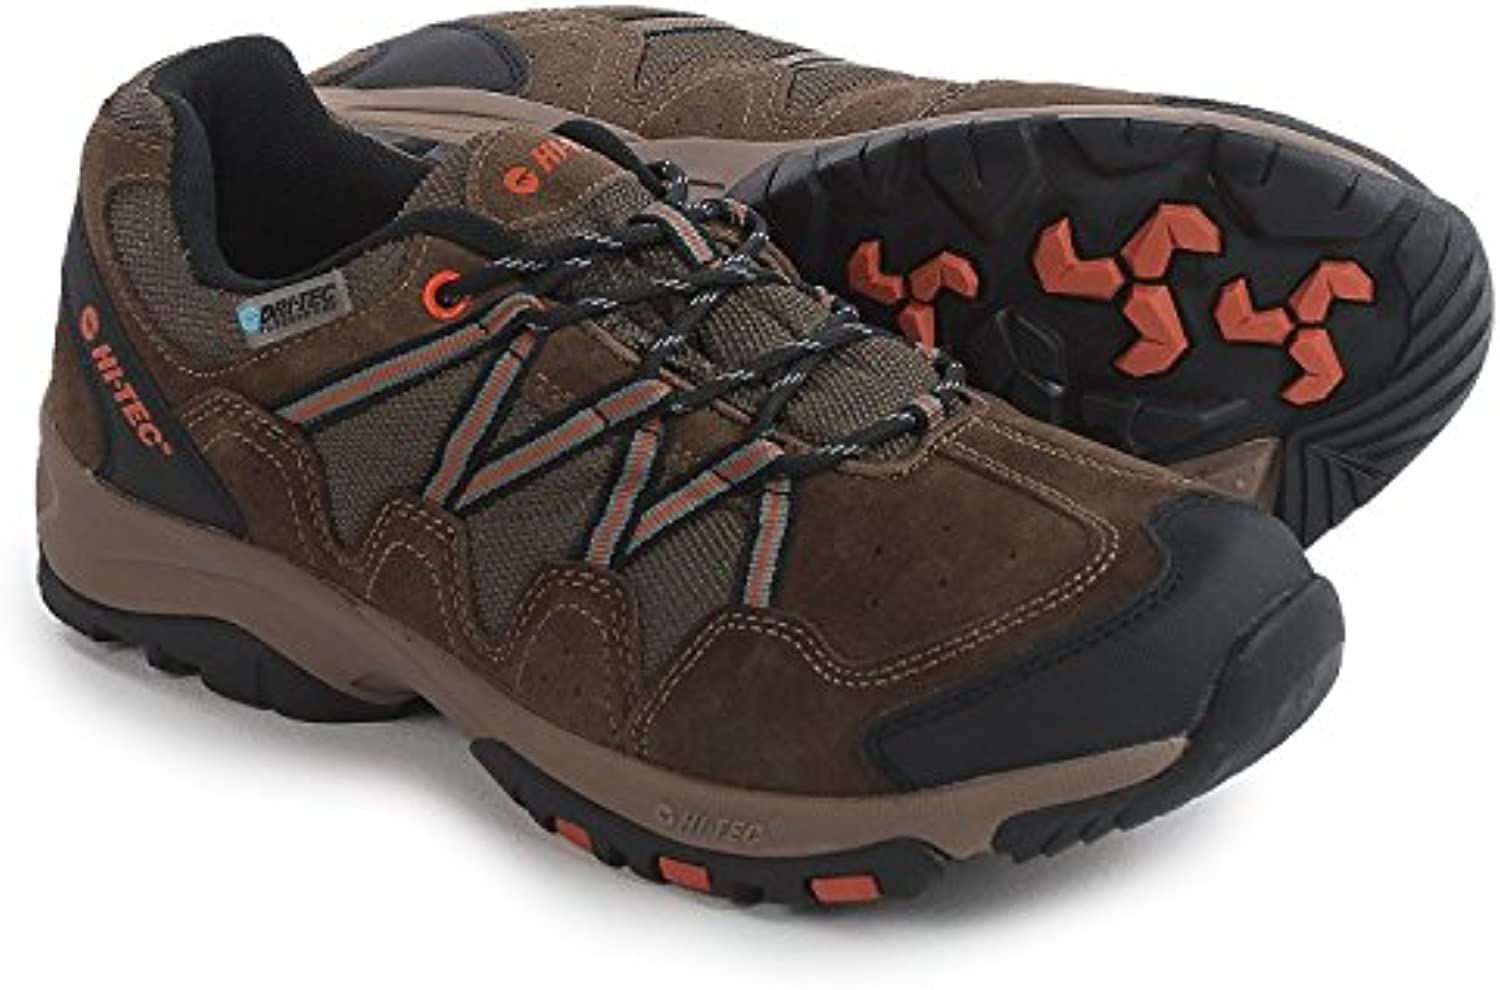 DEPORTIVO HI-TEC DEXTER LOW WP MARRON 41